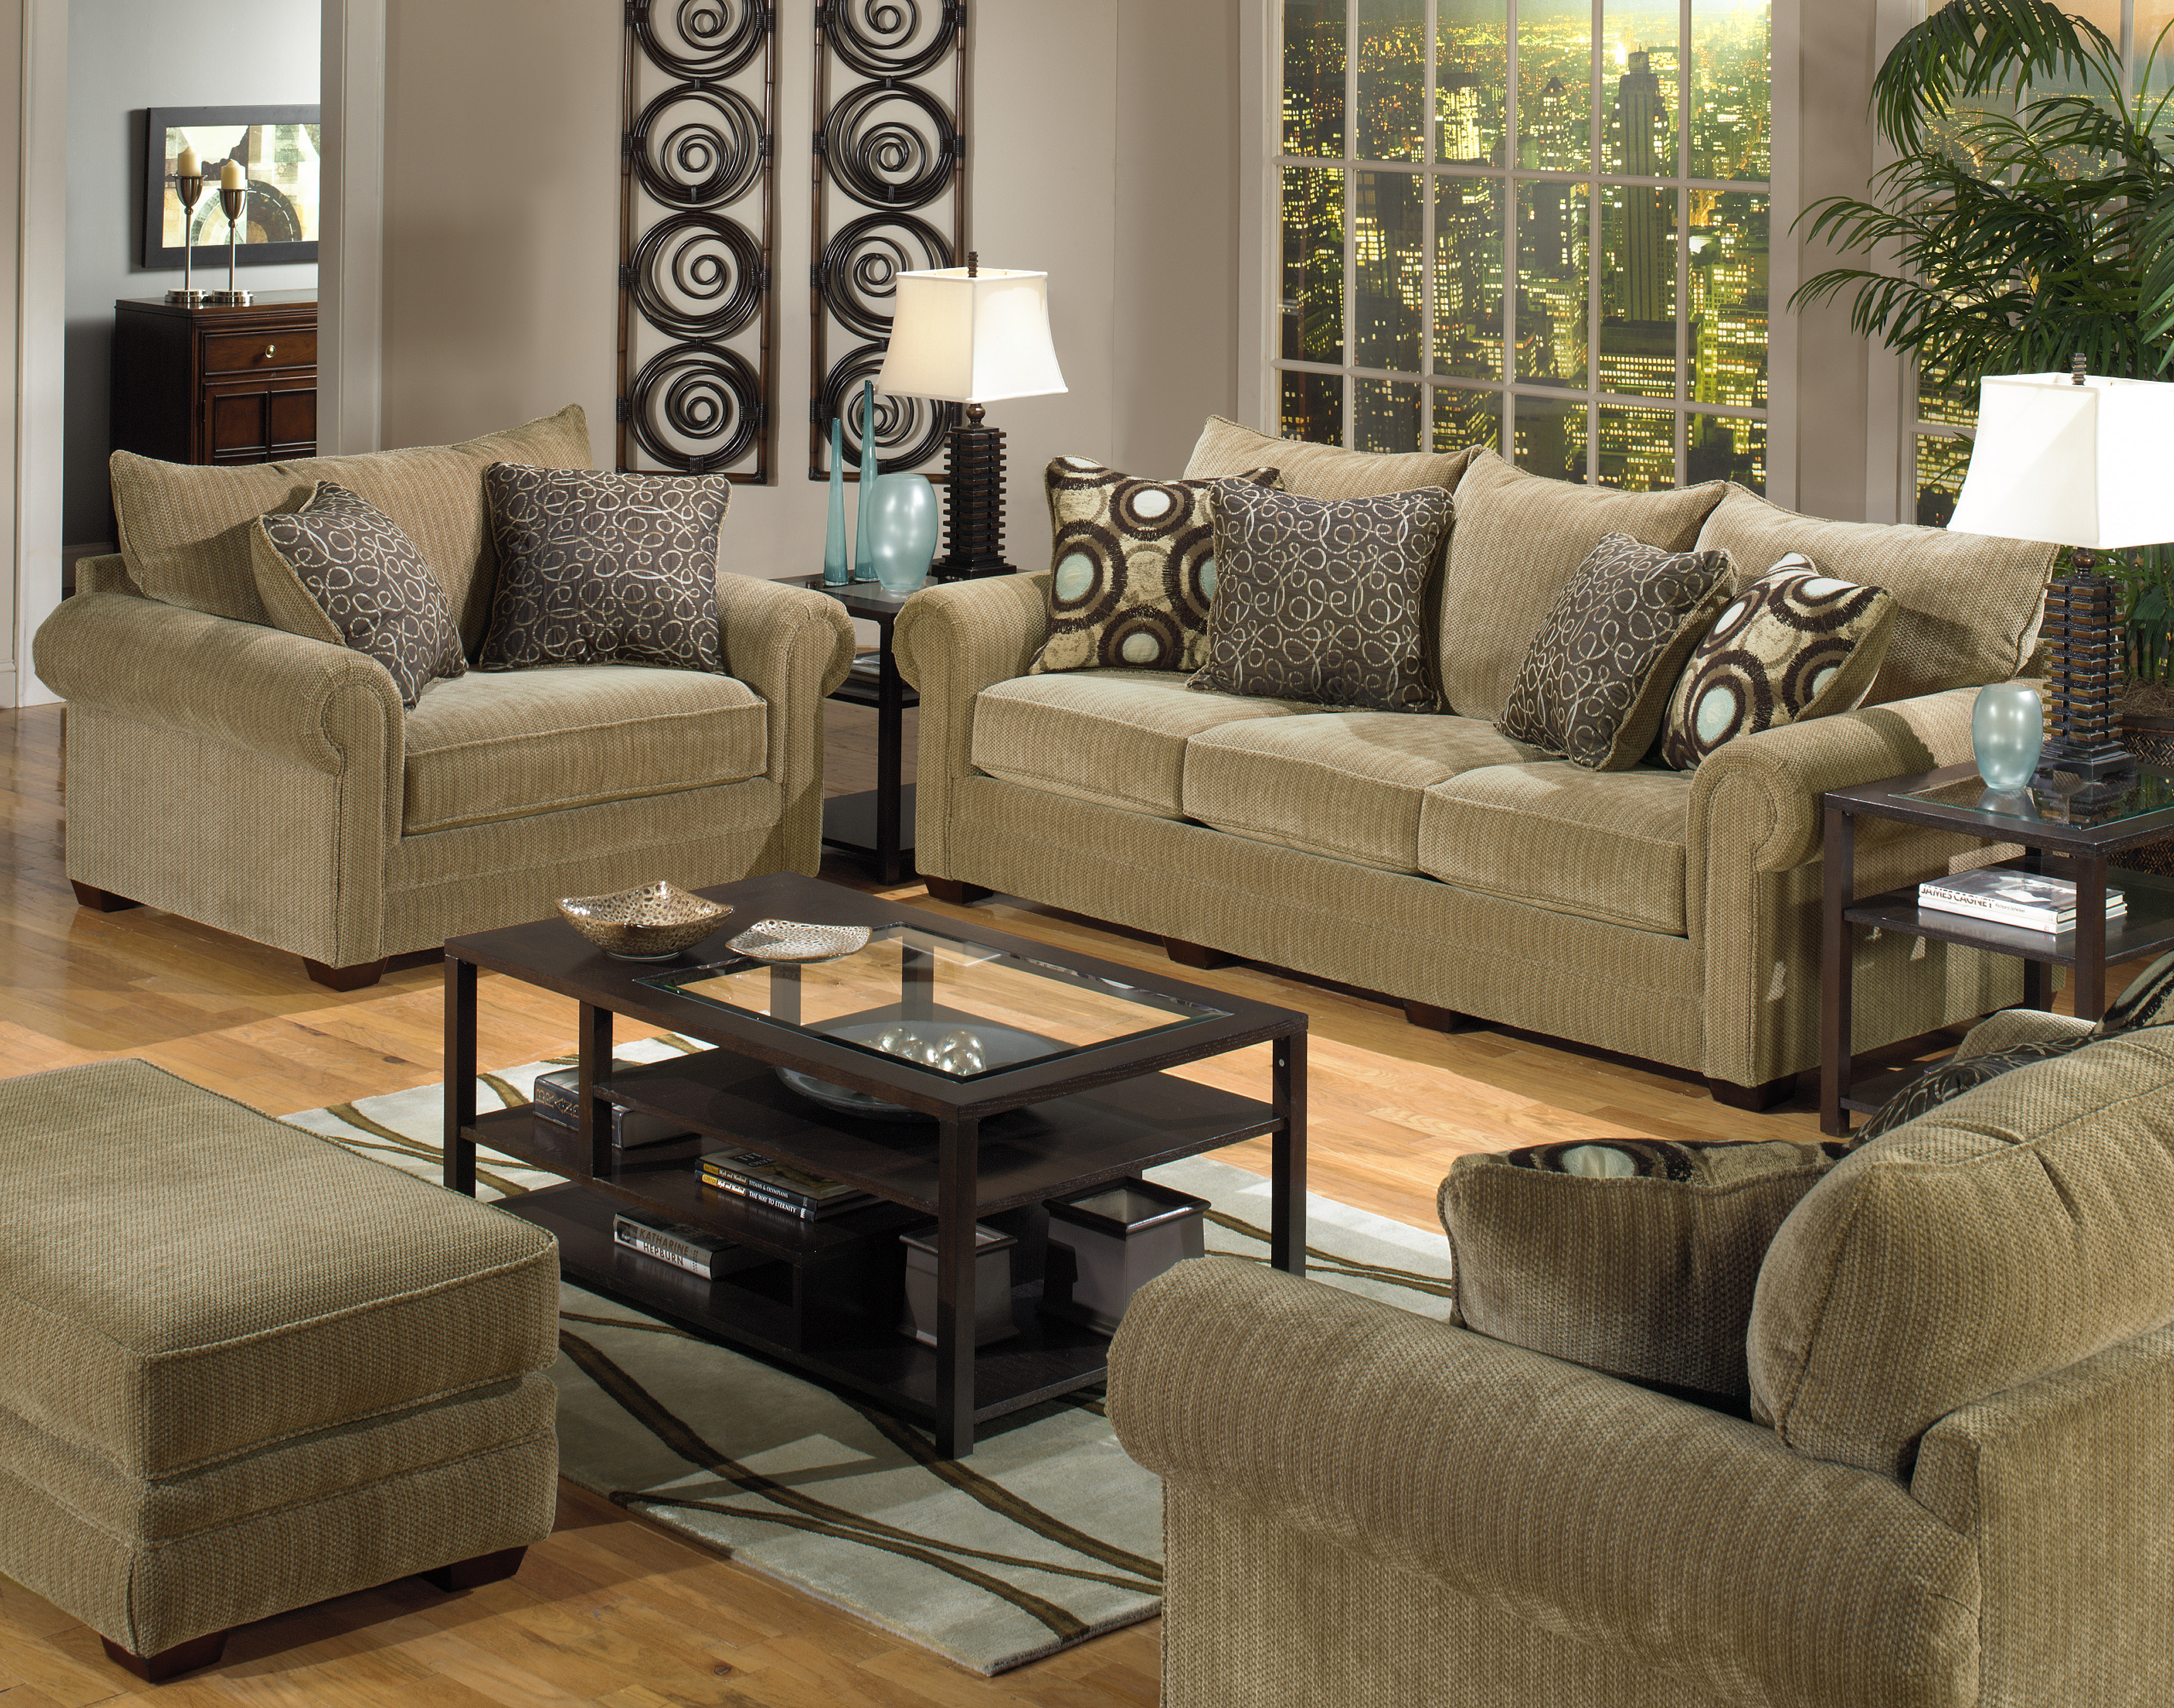 Gray Has 0 Subscribed Credited From Light Brown Couches Living Room Ideas 942879 Hd Wallpaper Backgrounds Download